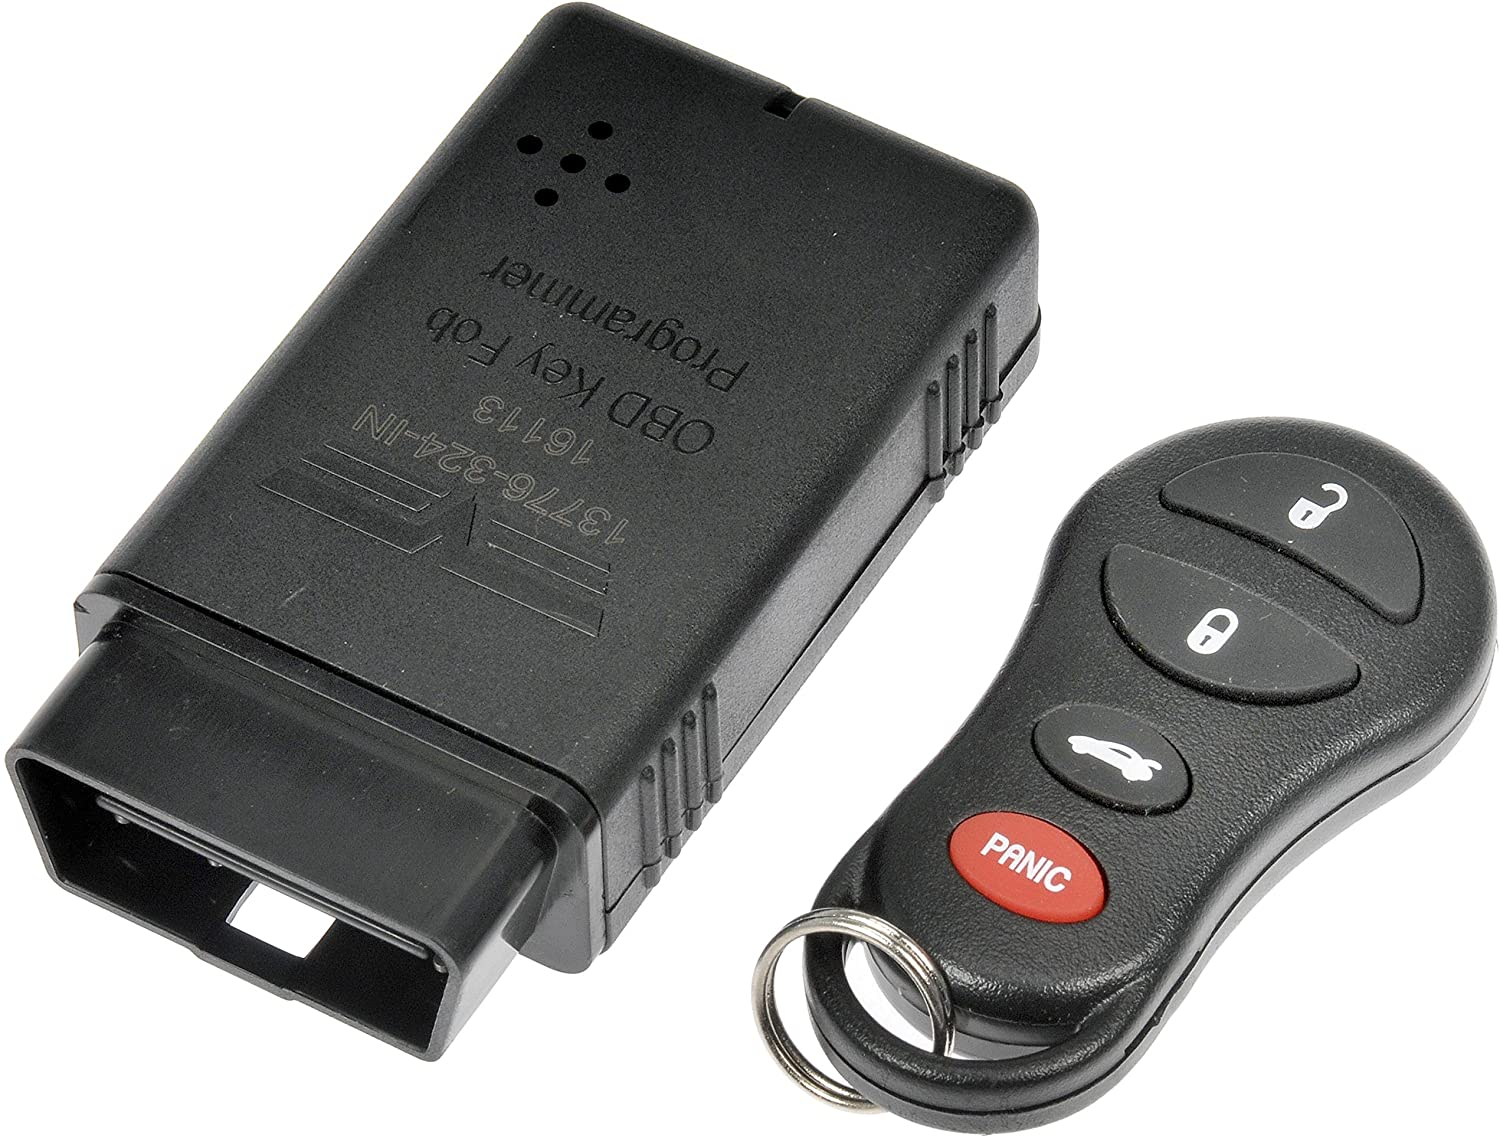 Keyless Entry Remote Key Fob Black with Programmer Dorman 13776